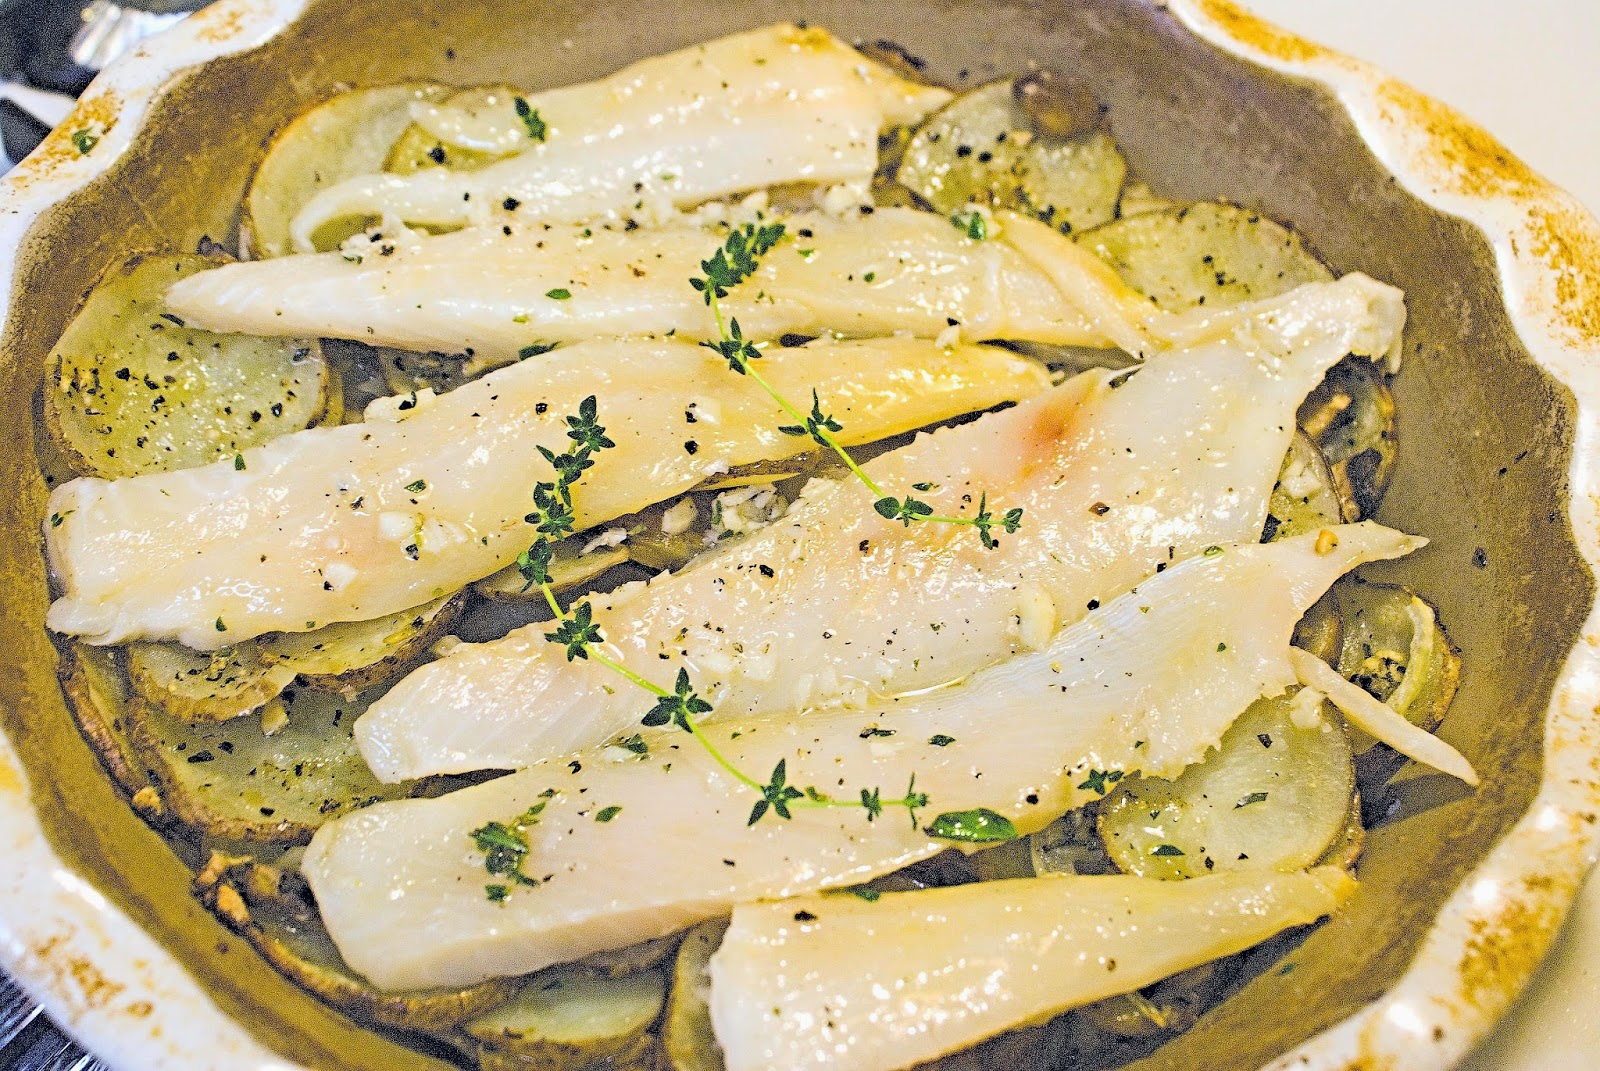 Baked Trout on a Bed of Potatoes